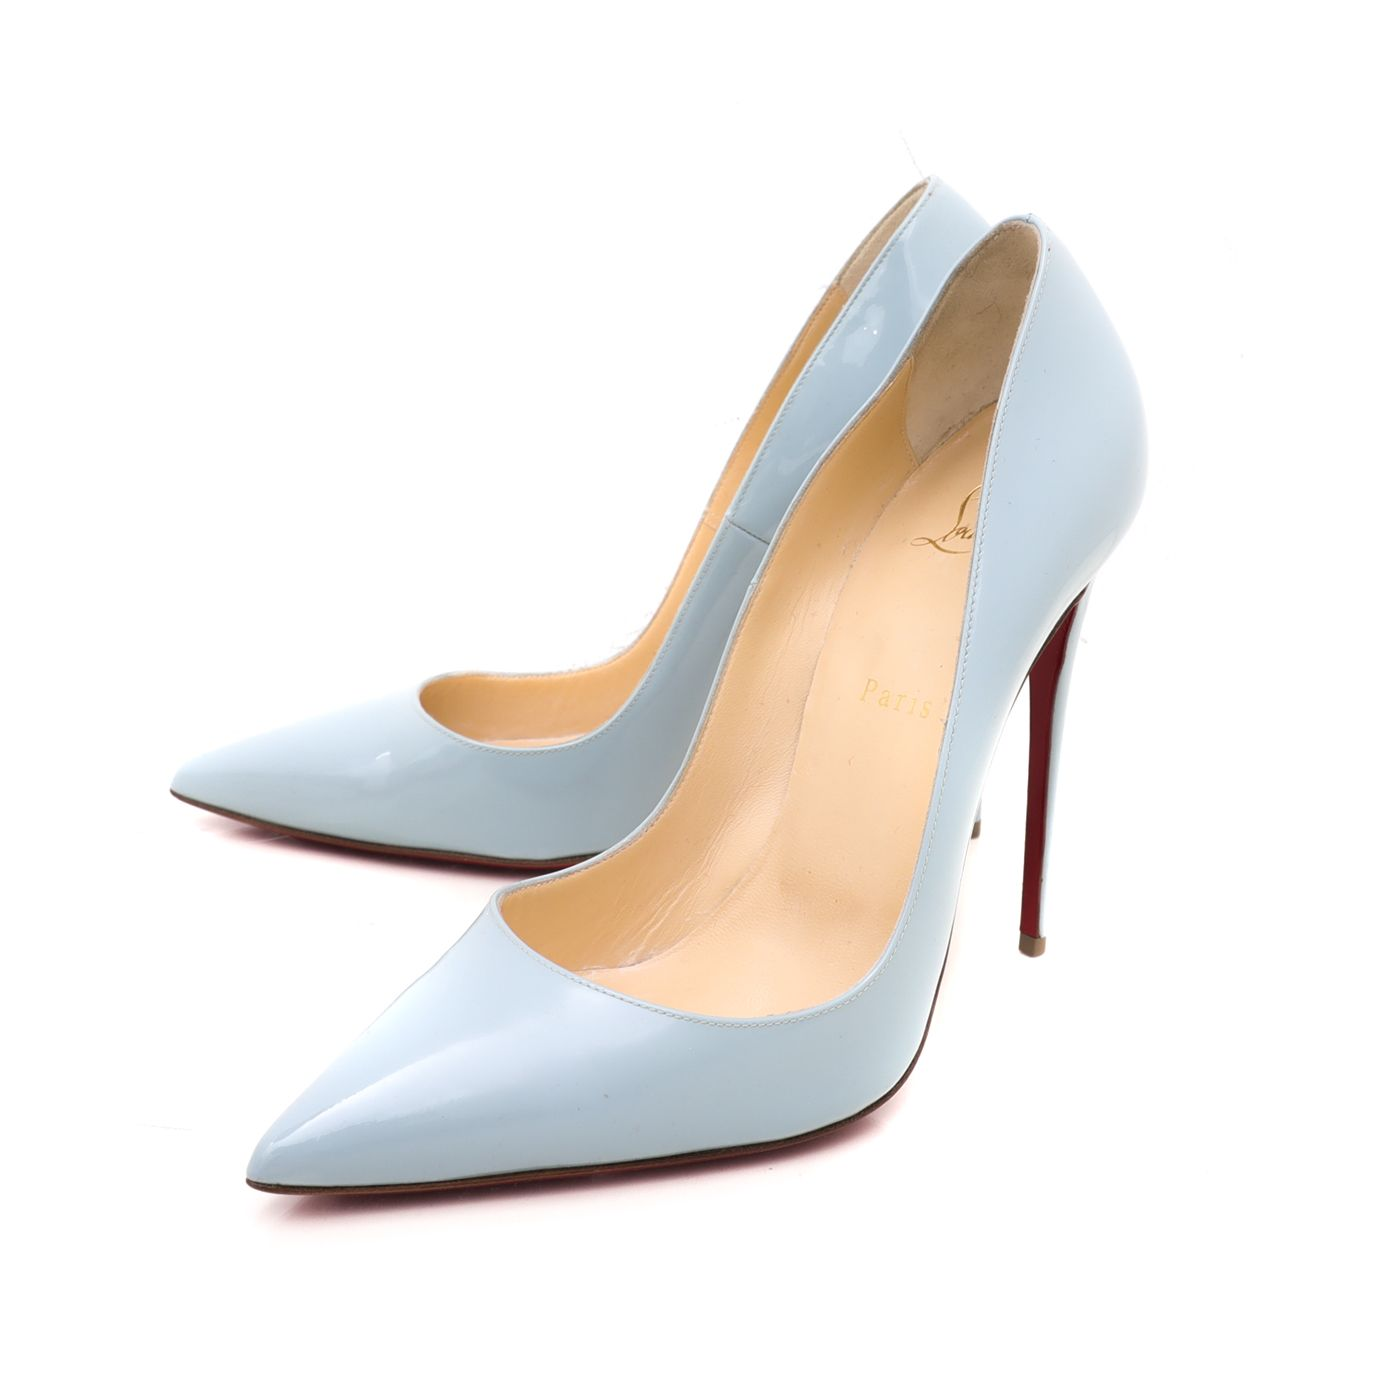 Christian Louboutin Light Blue So Kate Pumps 41